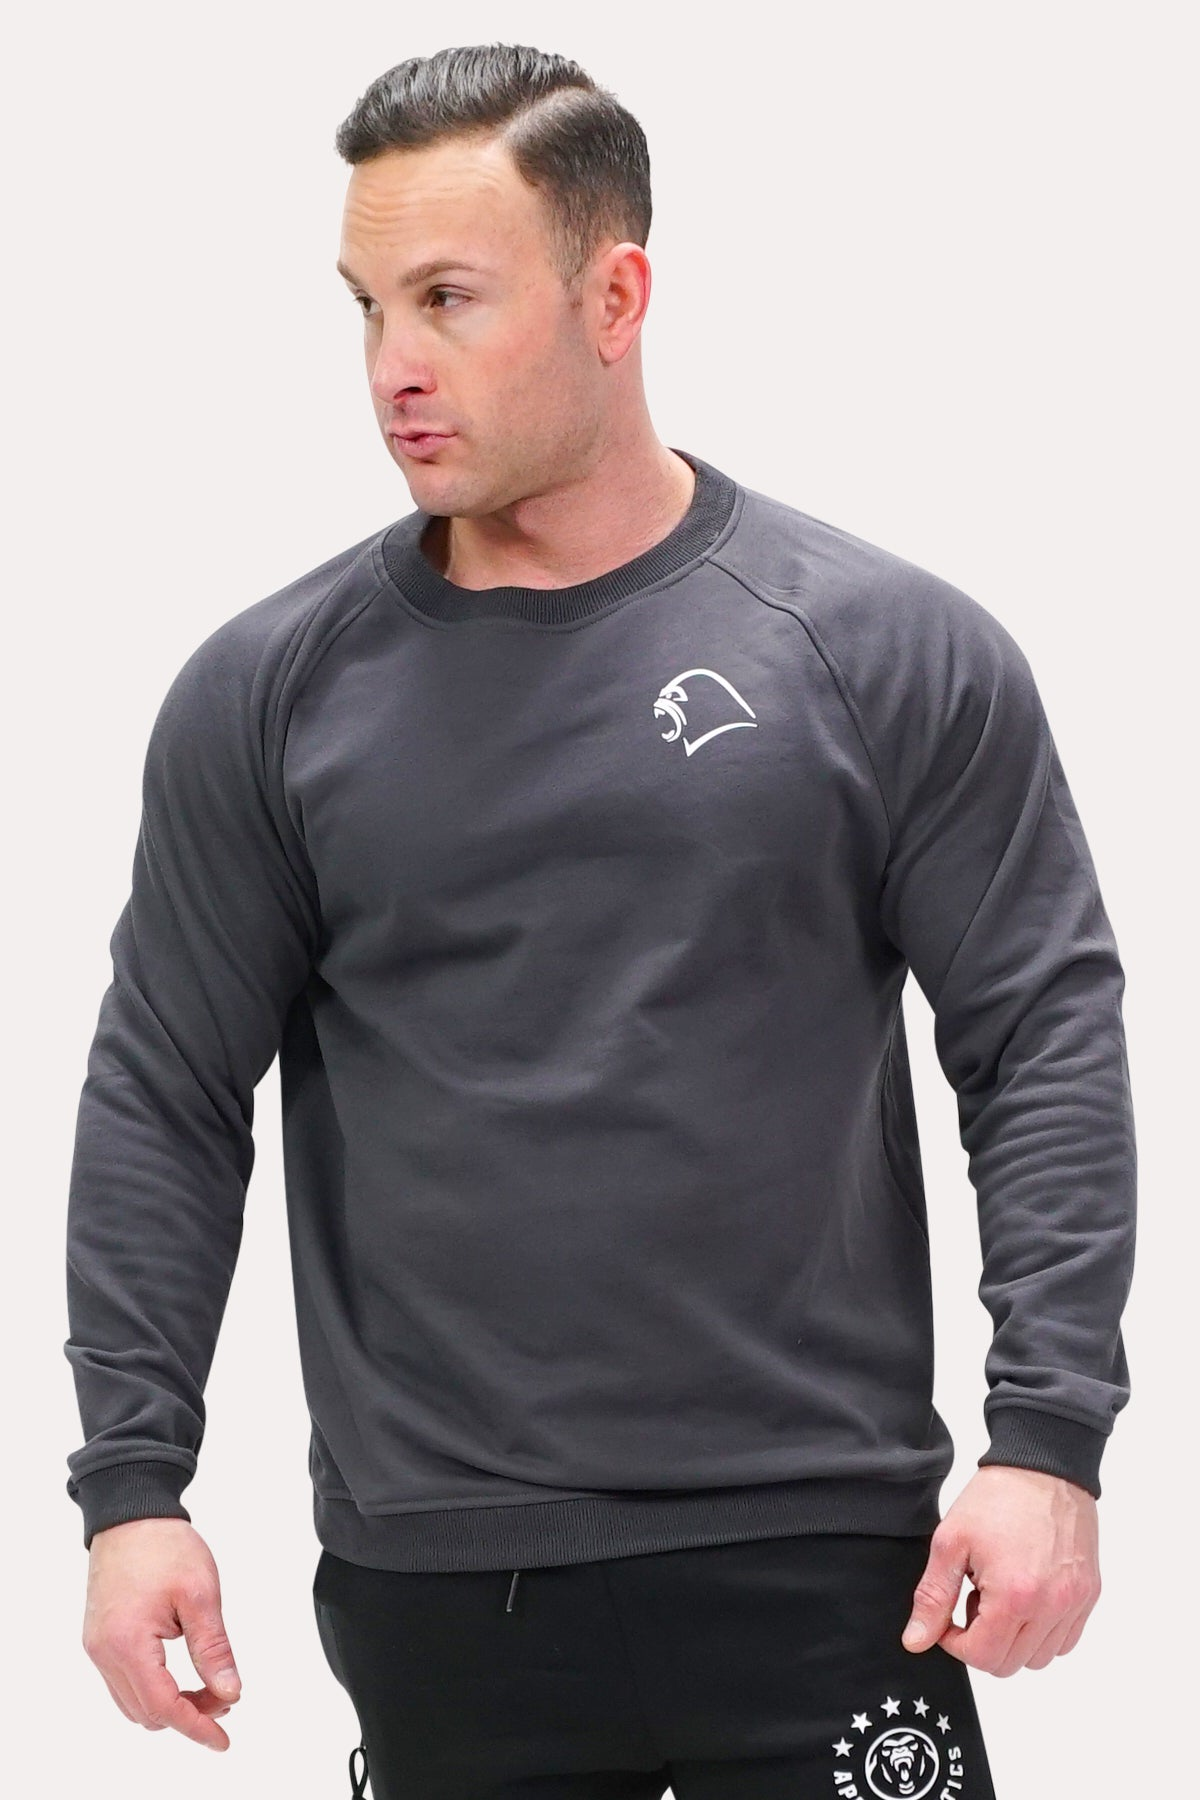 Crew Neck Sweatshirt - Minimal Charcoal